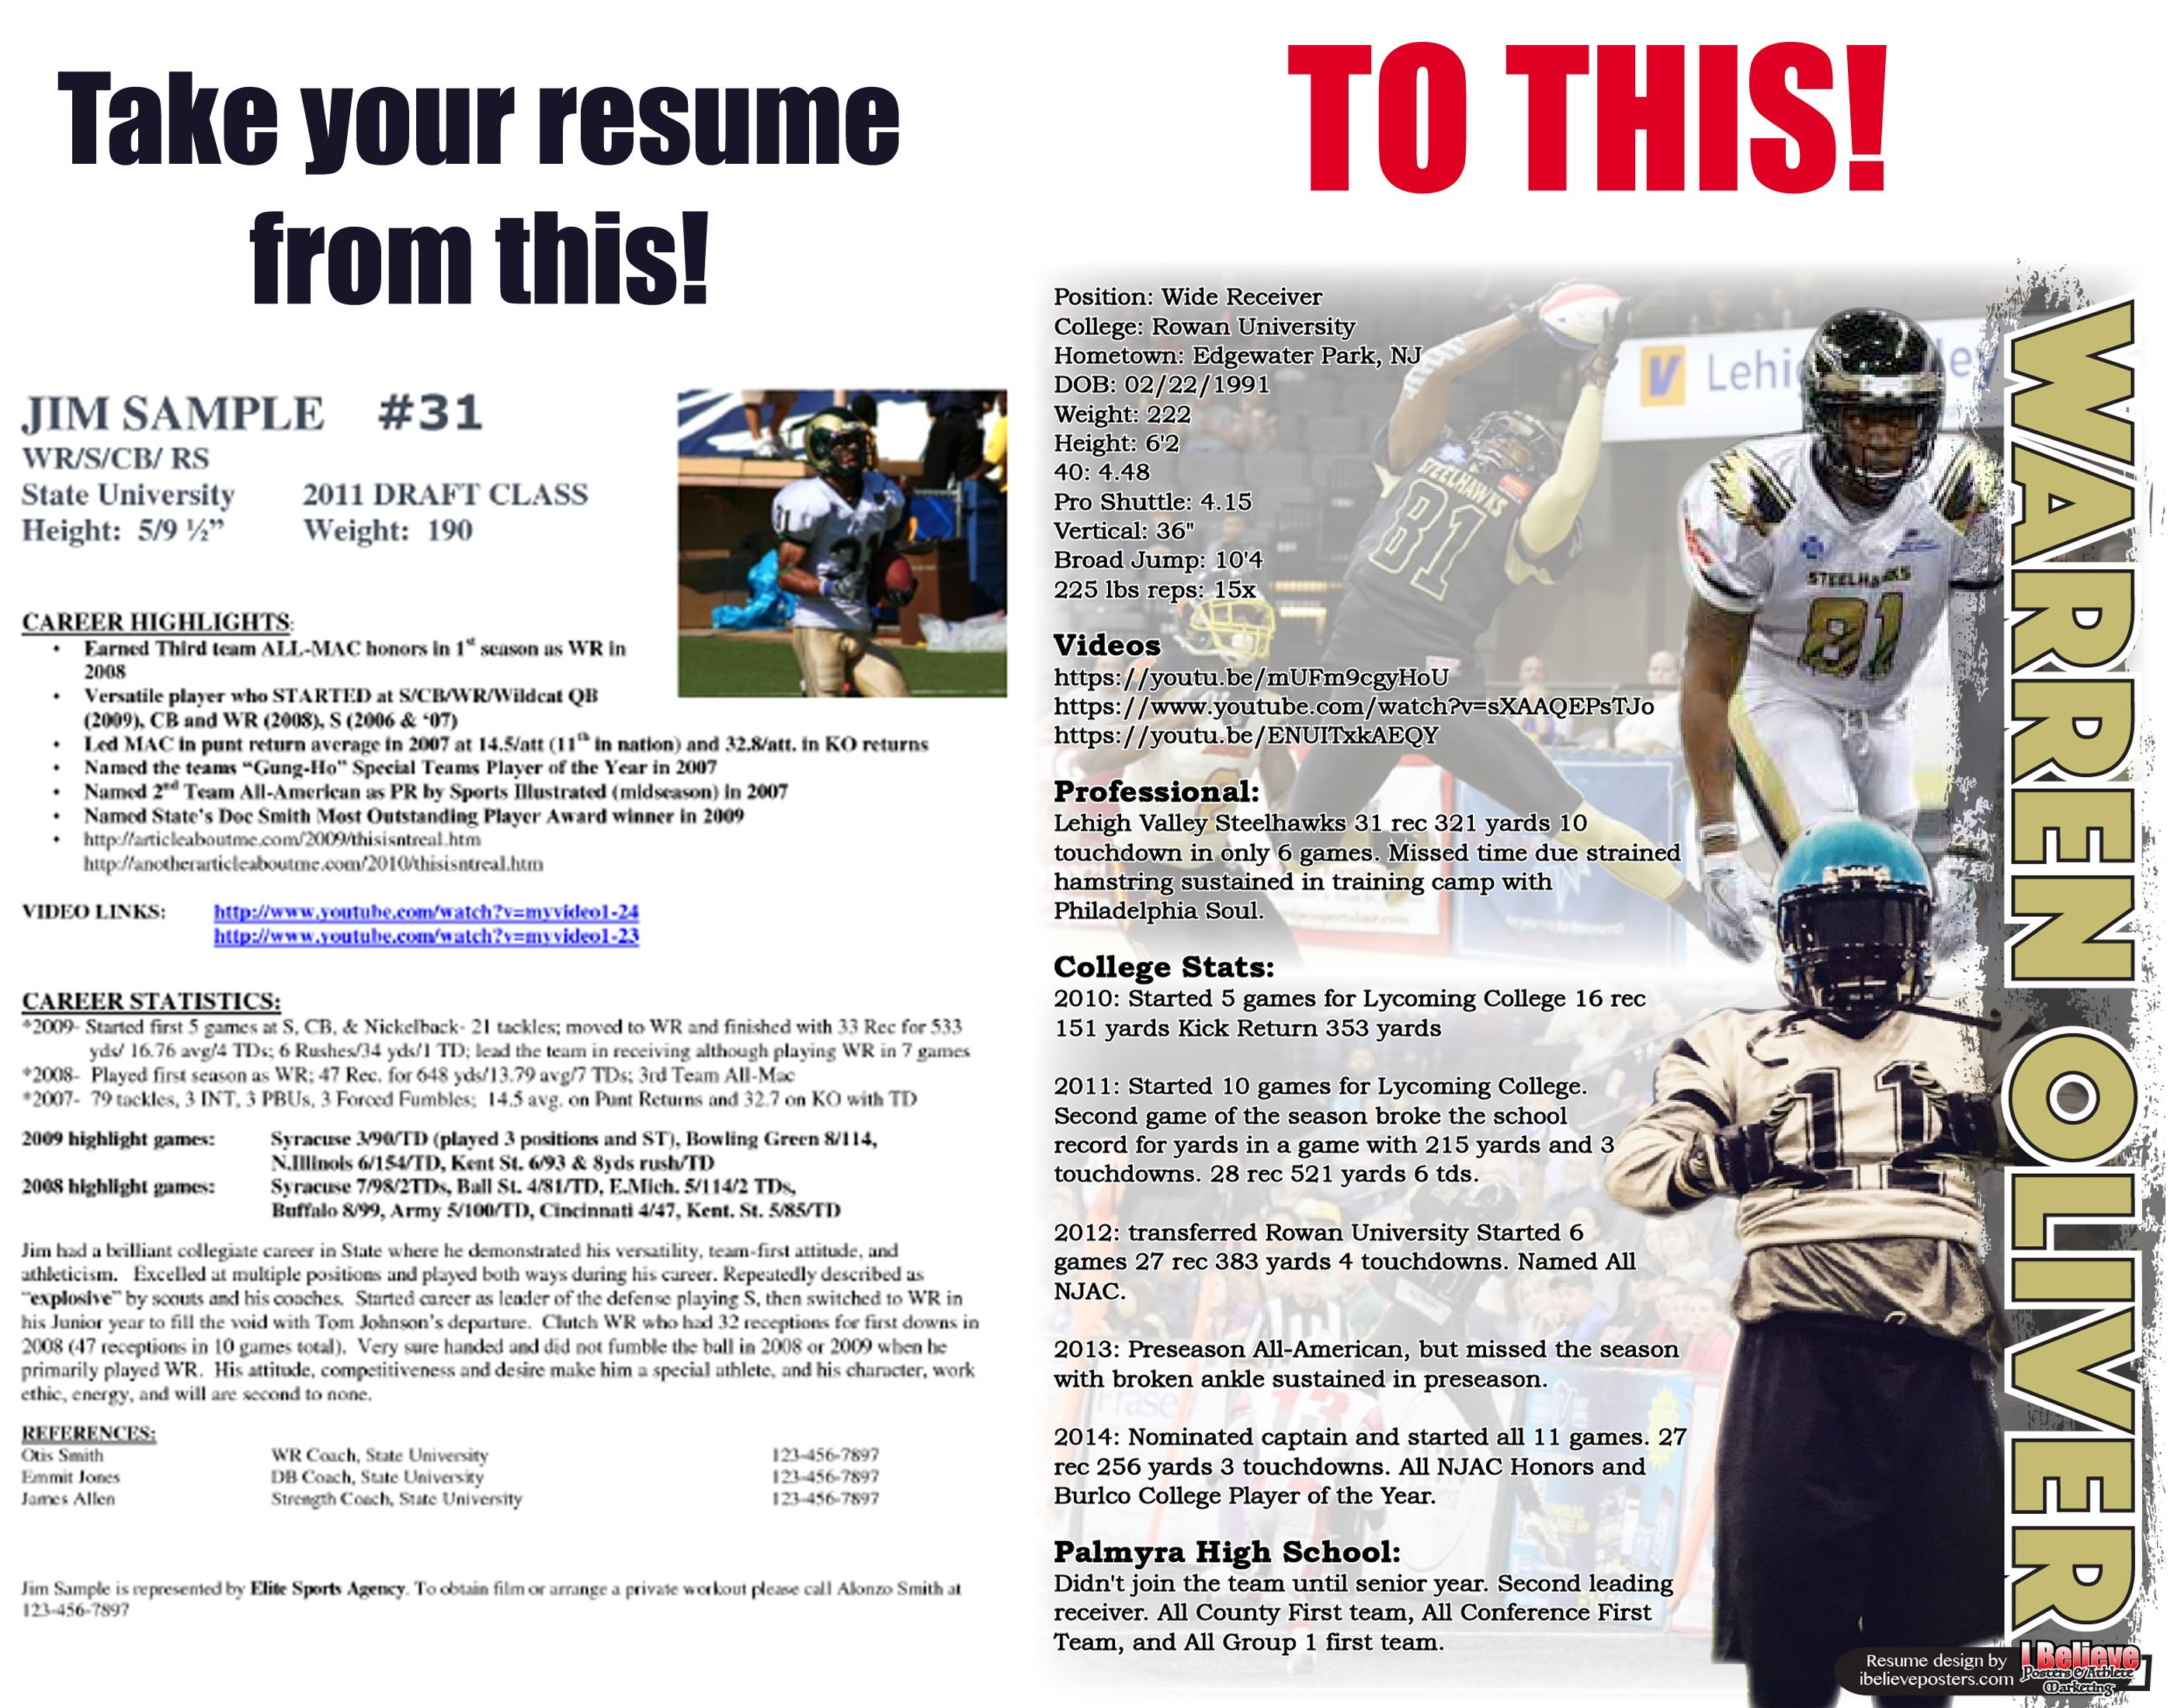 Sports Resume Athlete Resume Recruiting Sports Recruiting Athlete Recruiting Football Resum Resume Examples Student Athlete Medical Assistant Resume